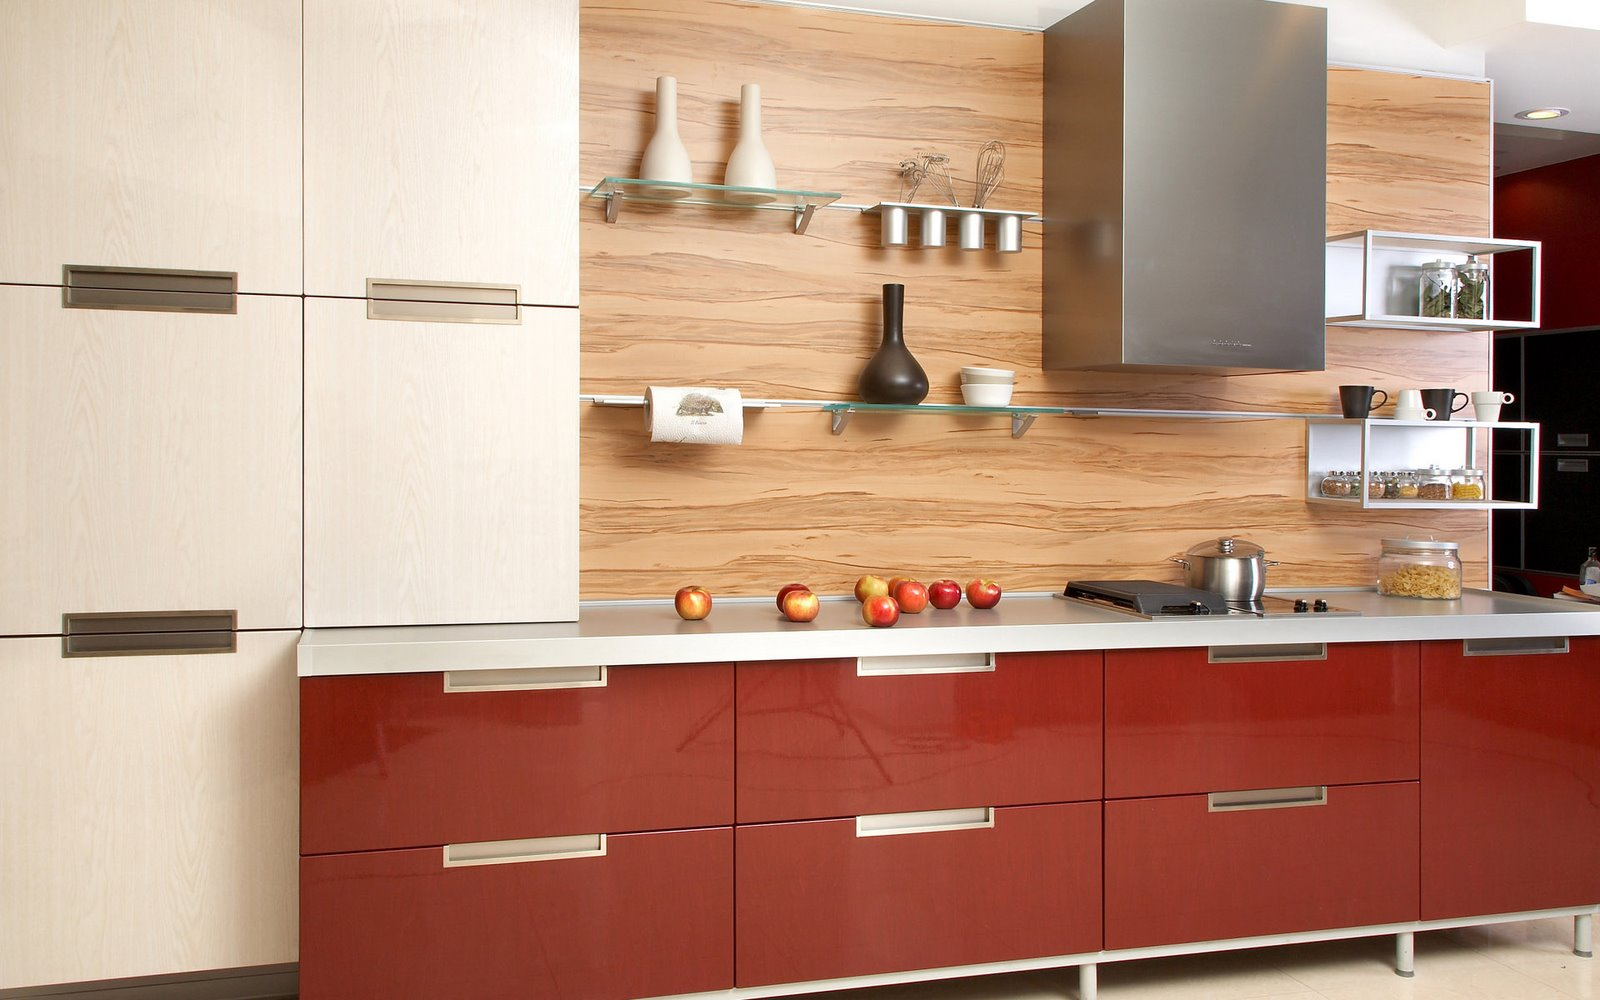 Italian Design Hi End Kitchen The Clean Lines And Sleek Look Is So